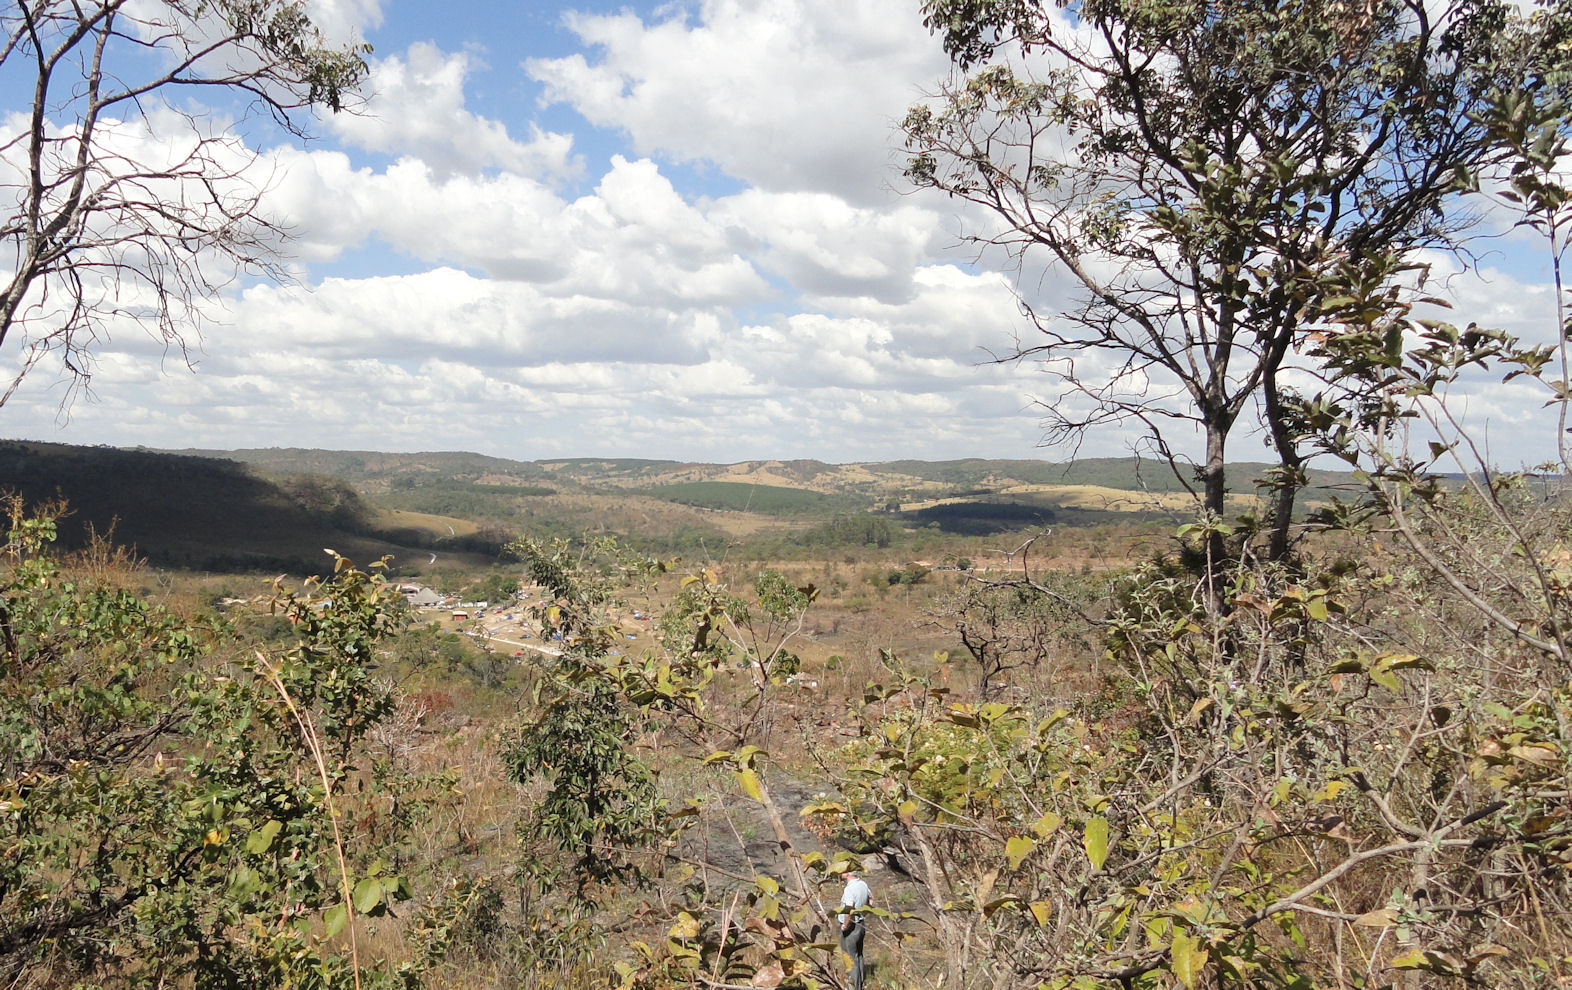 Wild landscape in Goias